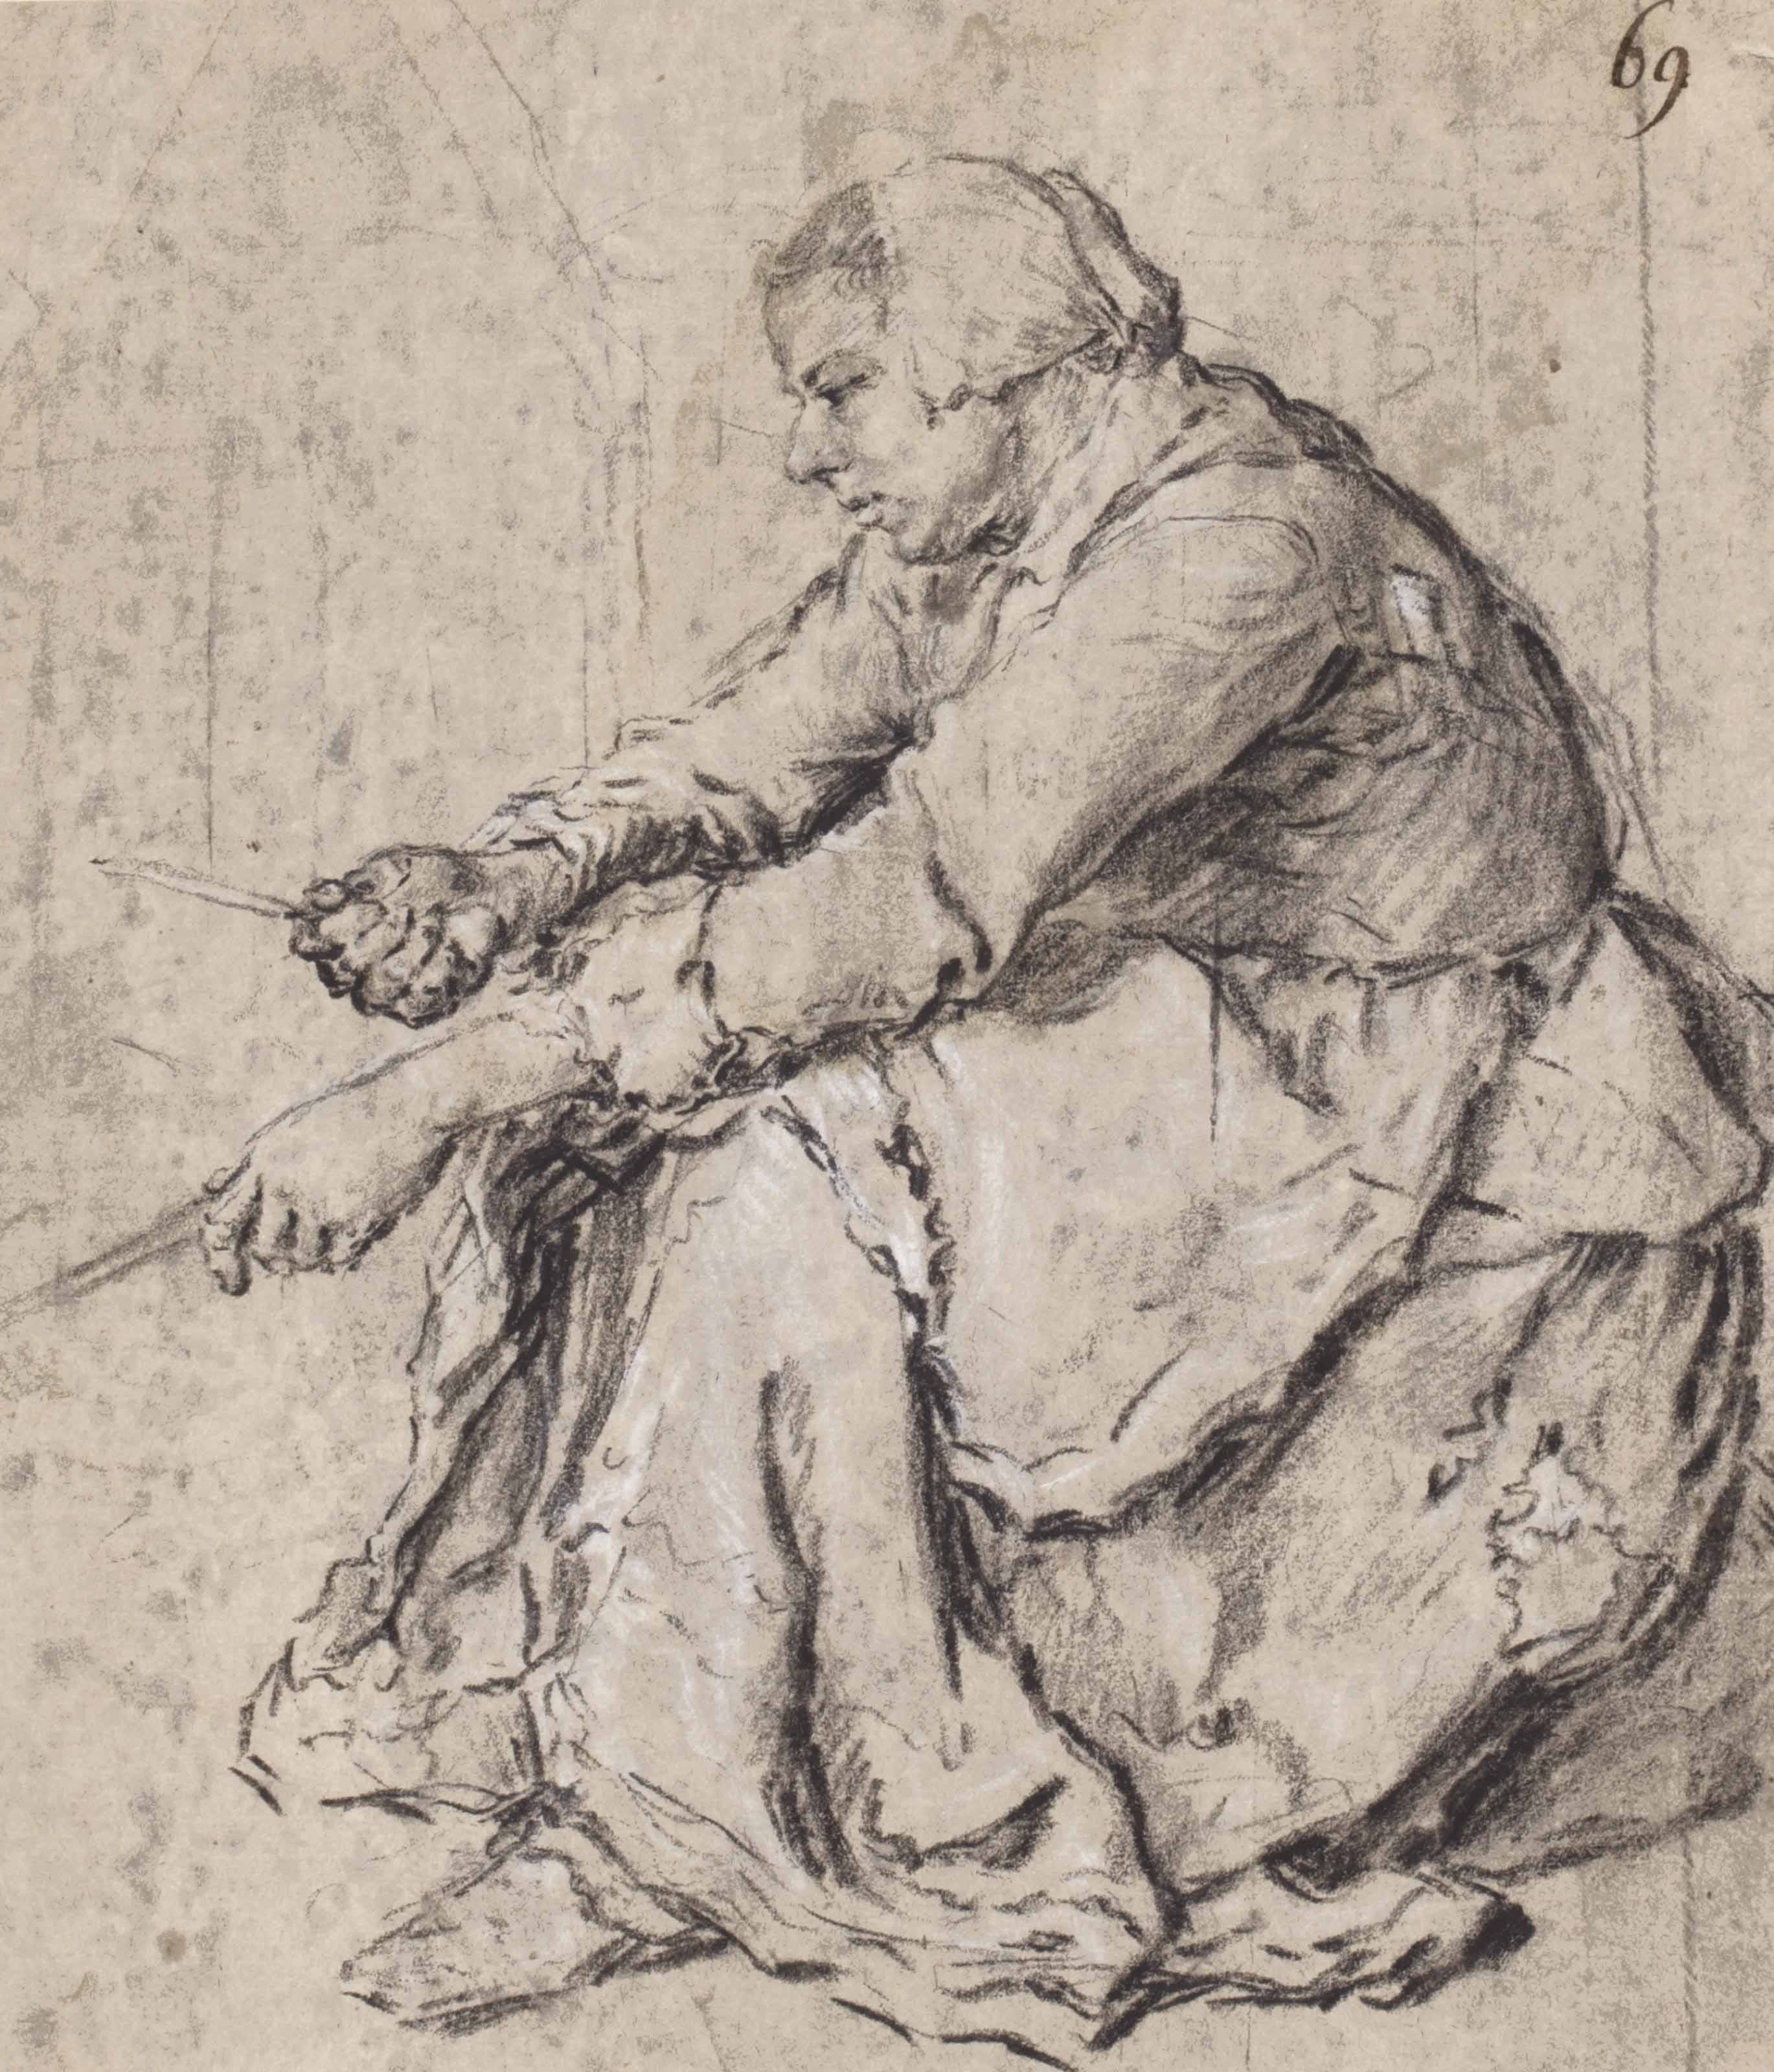 Attributed to Govert Flinck (Cleves 1615-1660 Amsterdam)